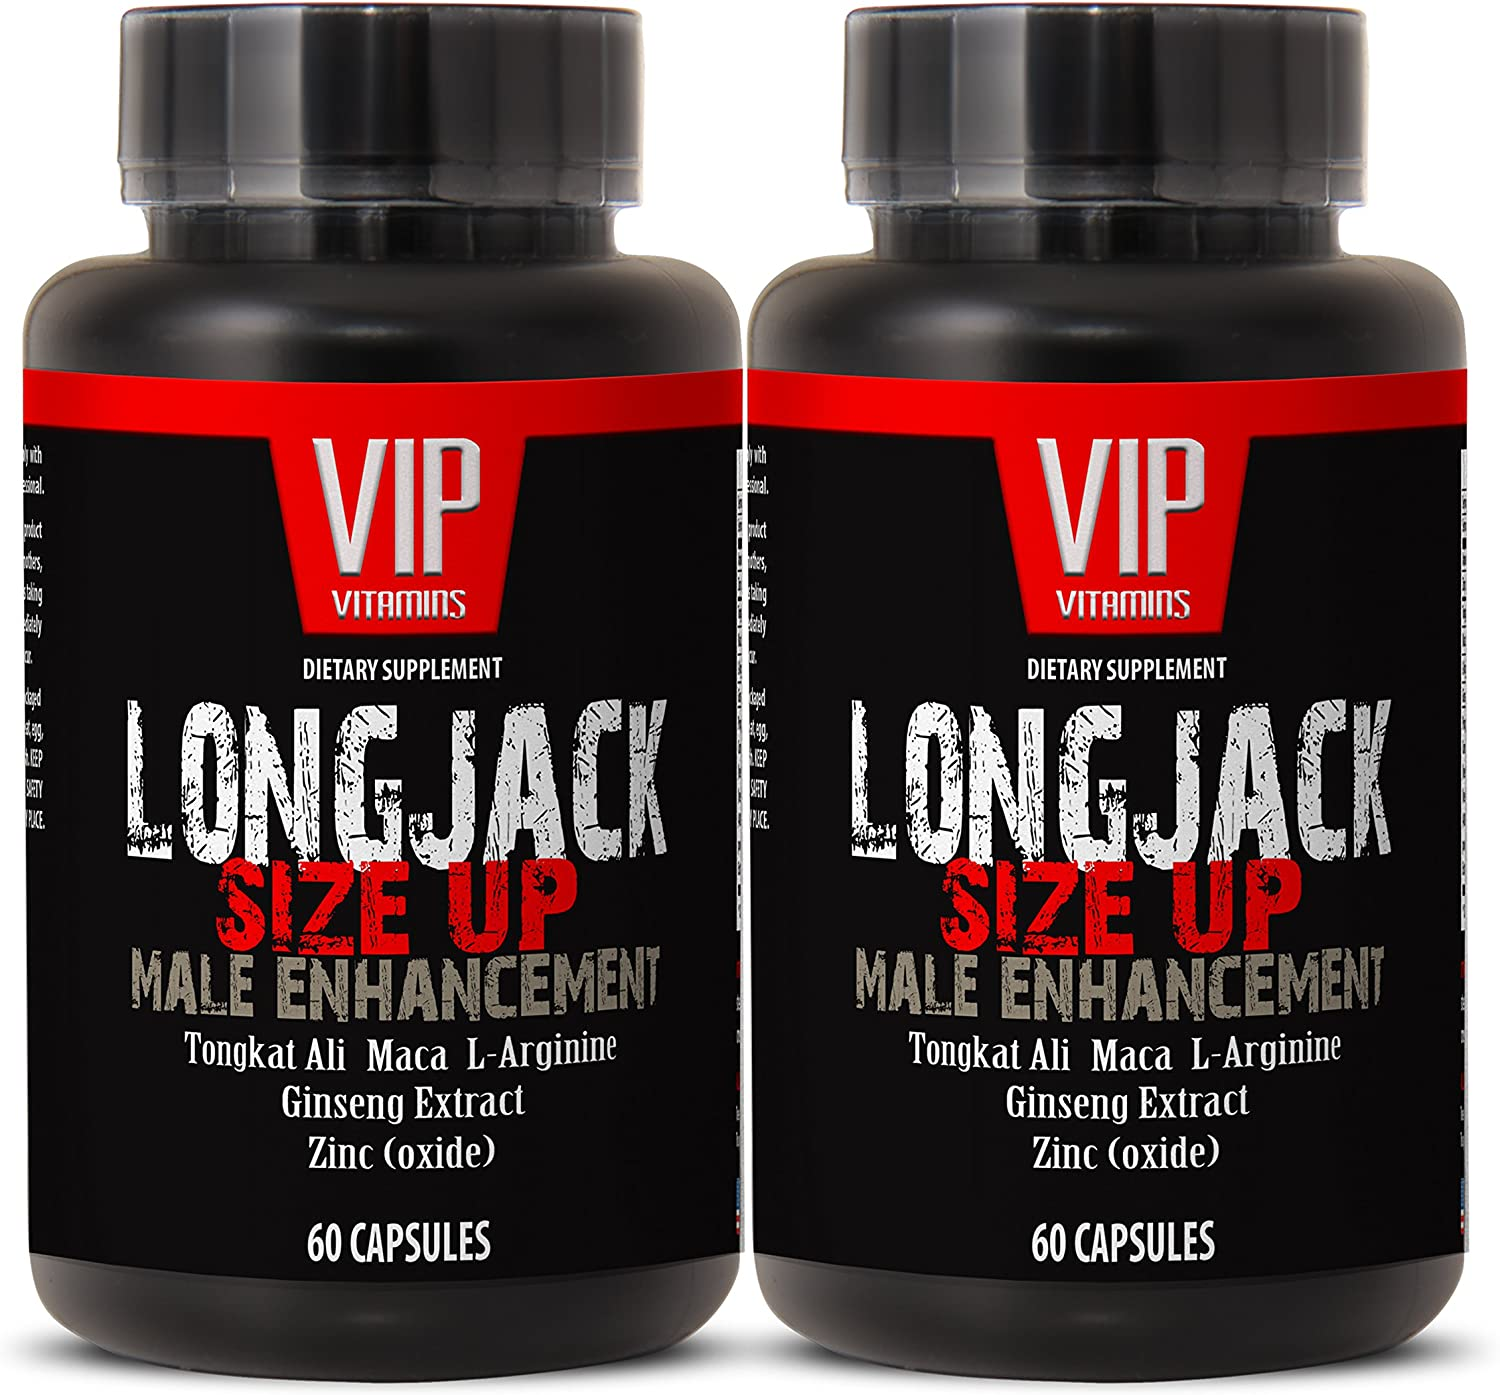 Longjack Size Up 2170mg - Male Enhancement - Natural Testosterone Booster - Premium Quality (2 Bottles 120 Capsules)